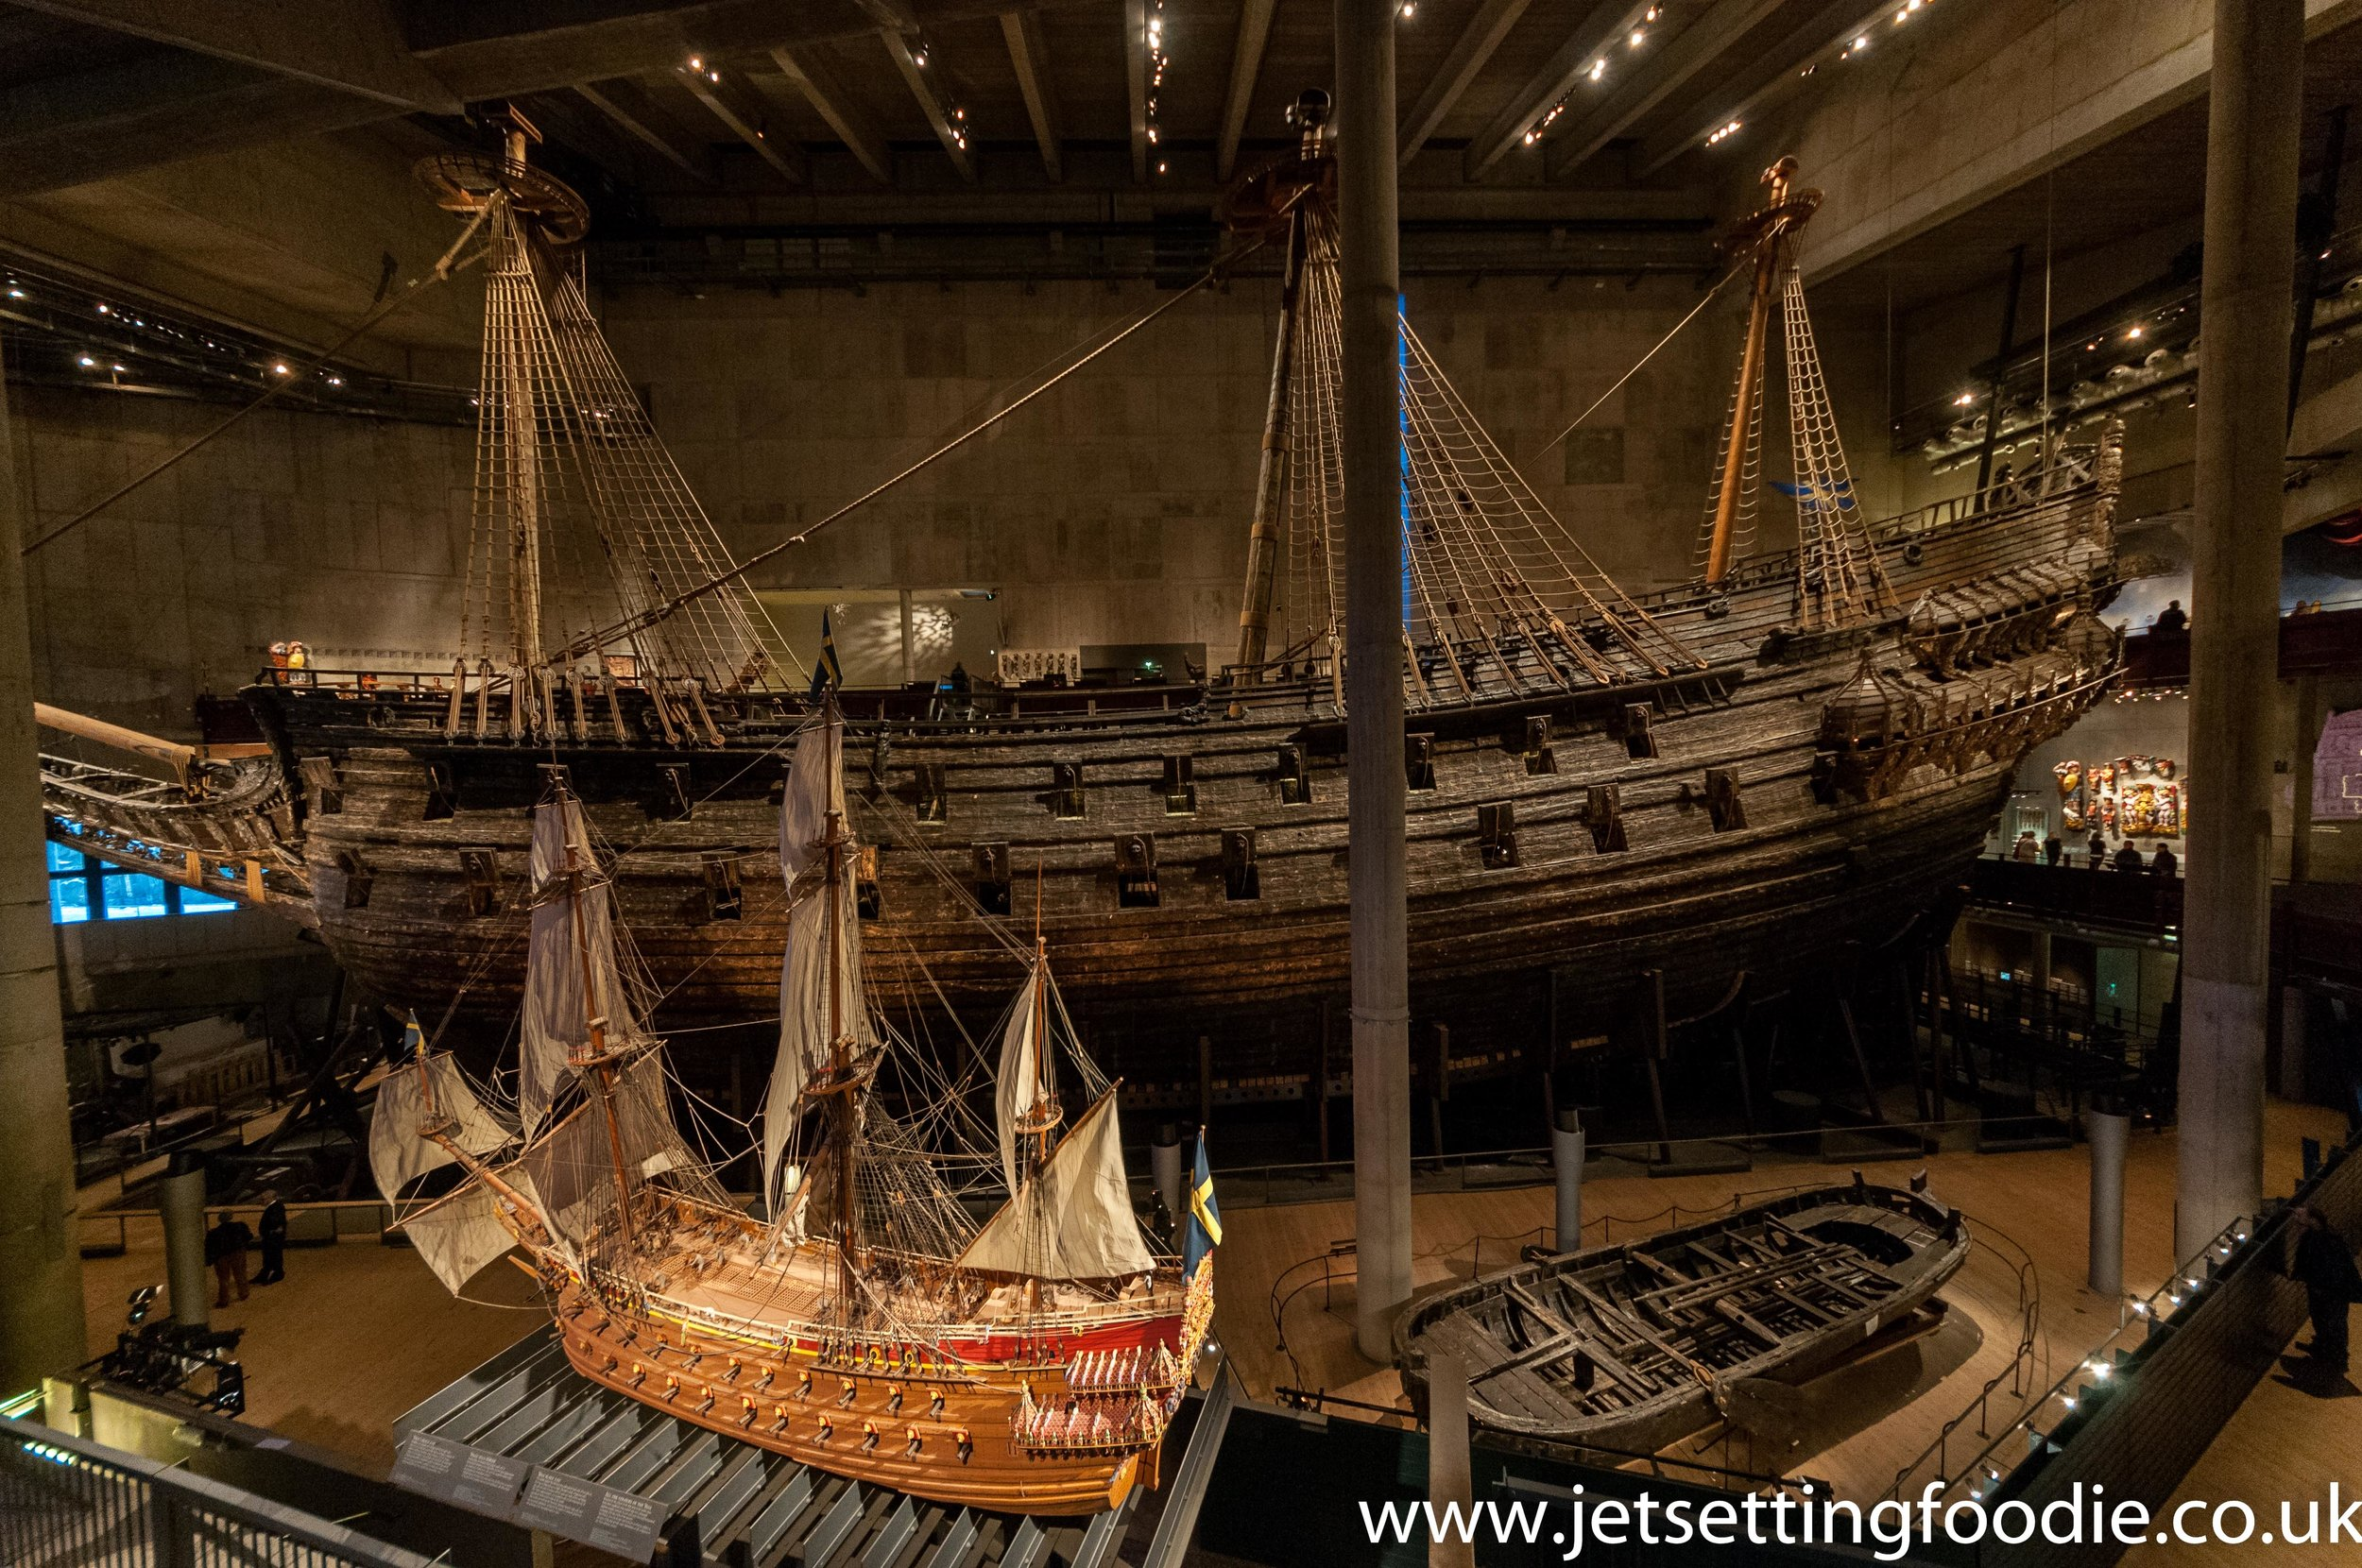 The Vasa in all its glory, fronted by a scale replica and its lifeboat.